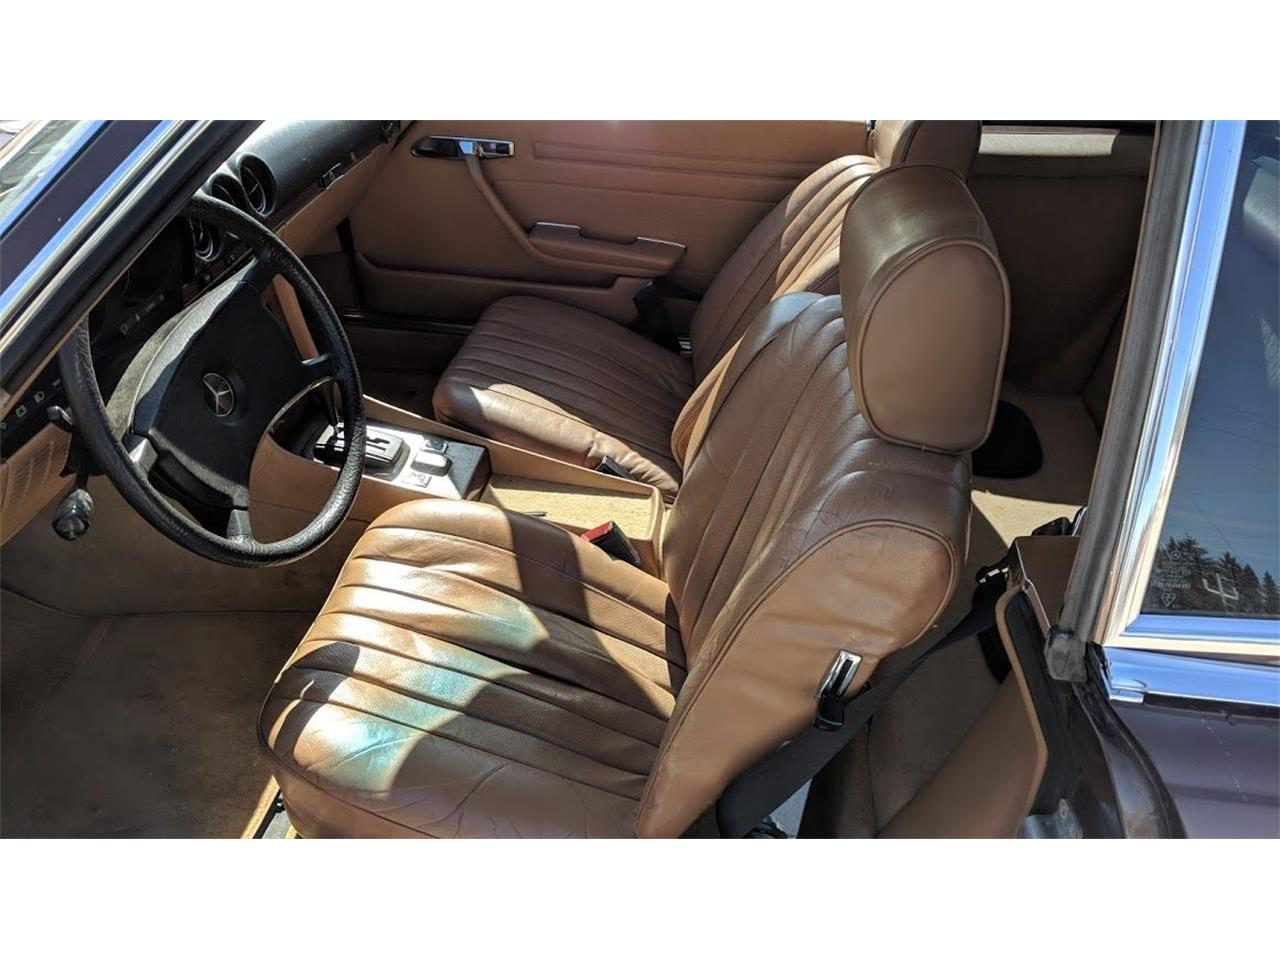 1981 Mercedes-Benz 380 for sale in Annandale, MN – photo 12